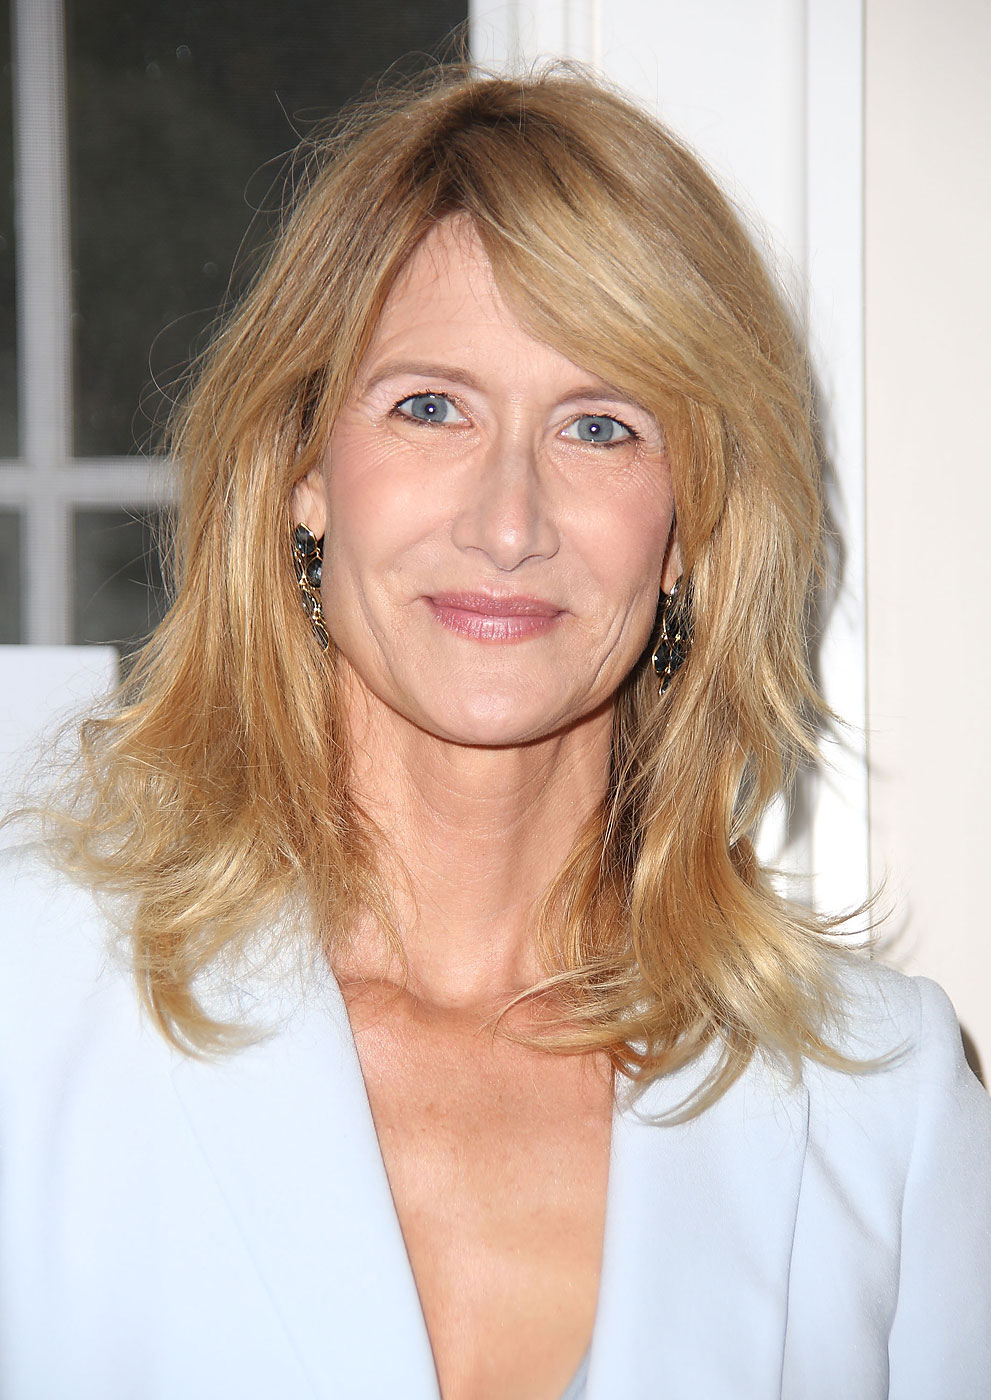 Laura Dern attends The Hampton International Film Festival  Wild  Premiere-Conversation with Laura Dern at The Bay Street Theater on October 11, 2014 in Sag Harbor, New York.